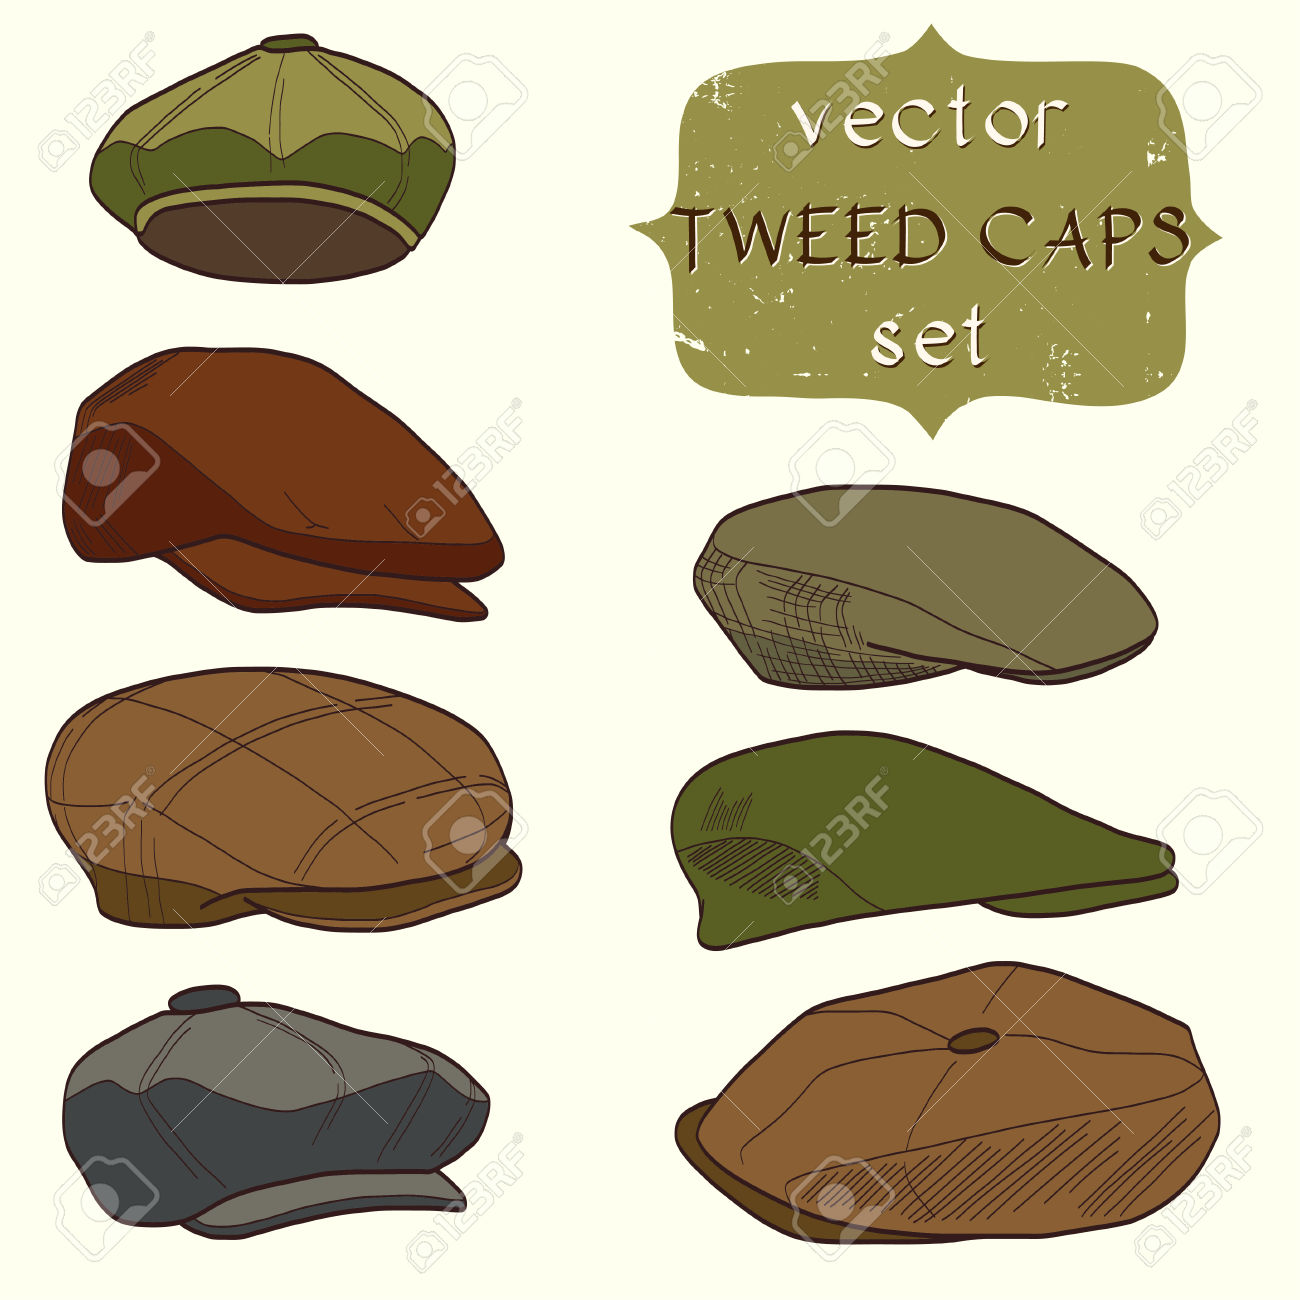 Set Of Hand Drawn Men's Tweed Caps. Fashionable Cartoon Hats.